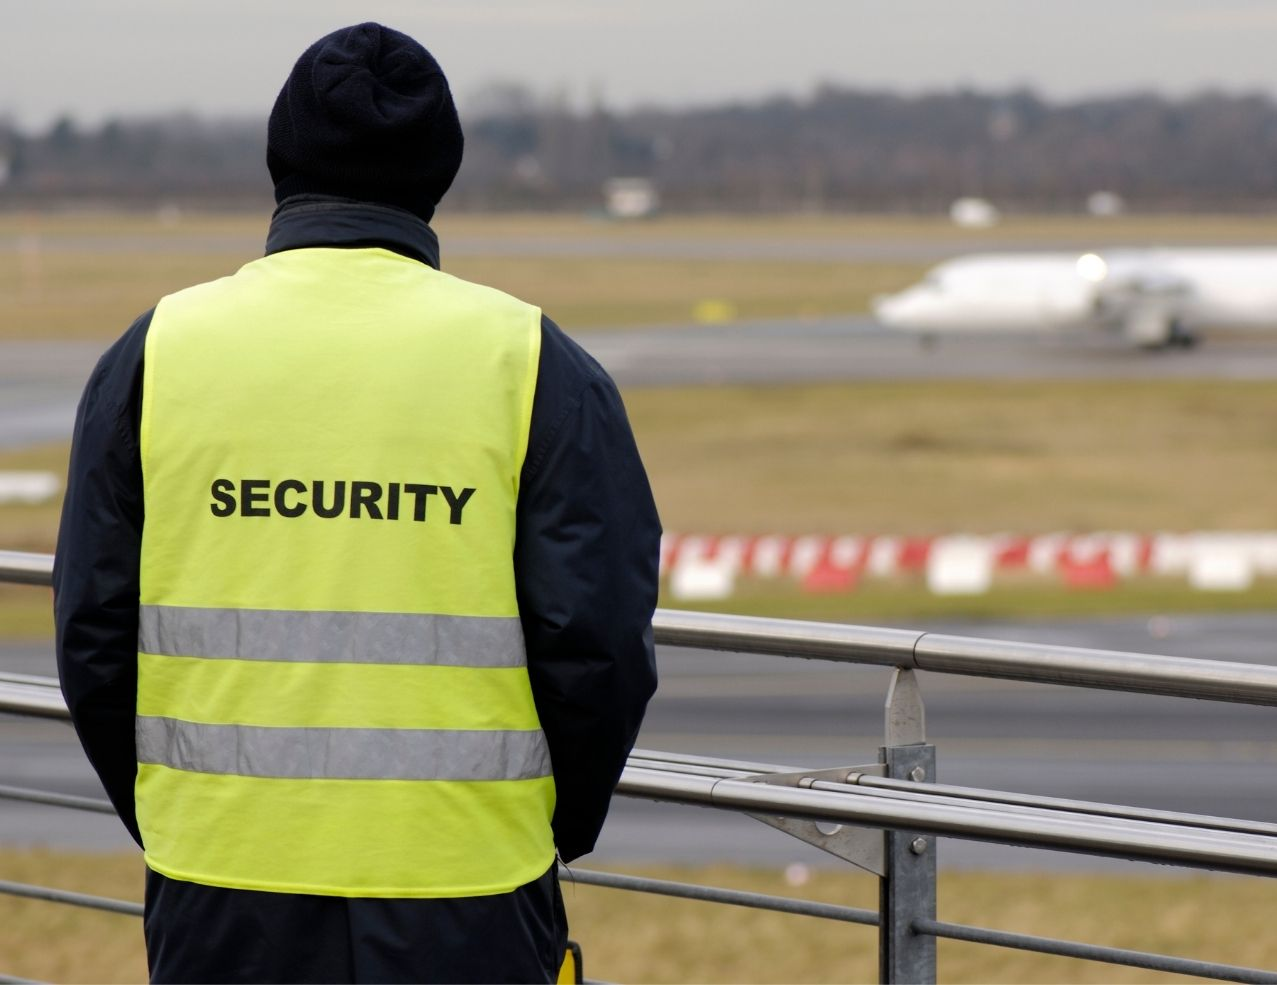 security trainings in aviation